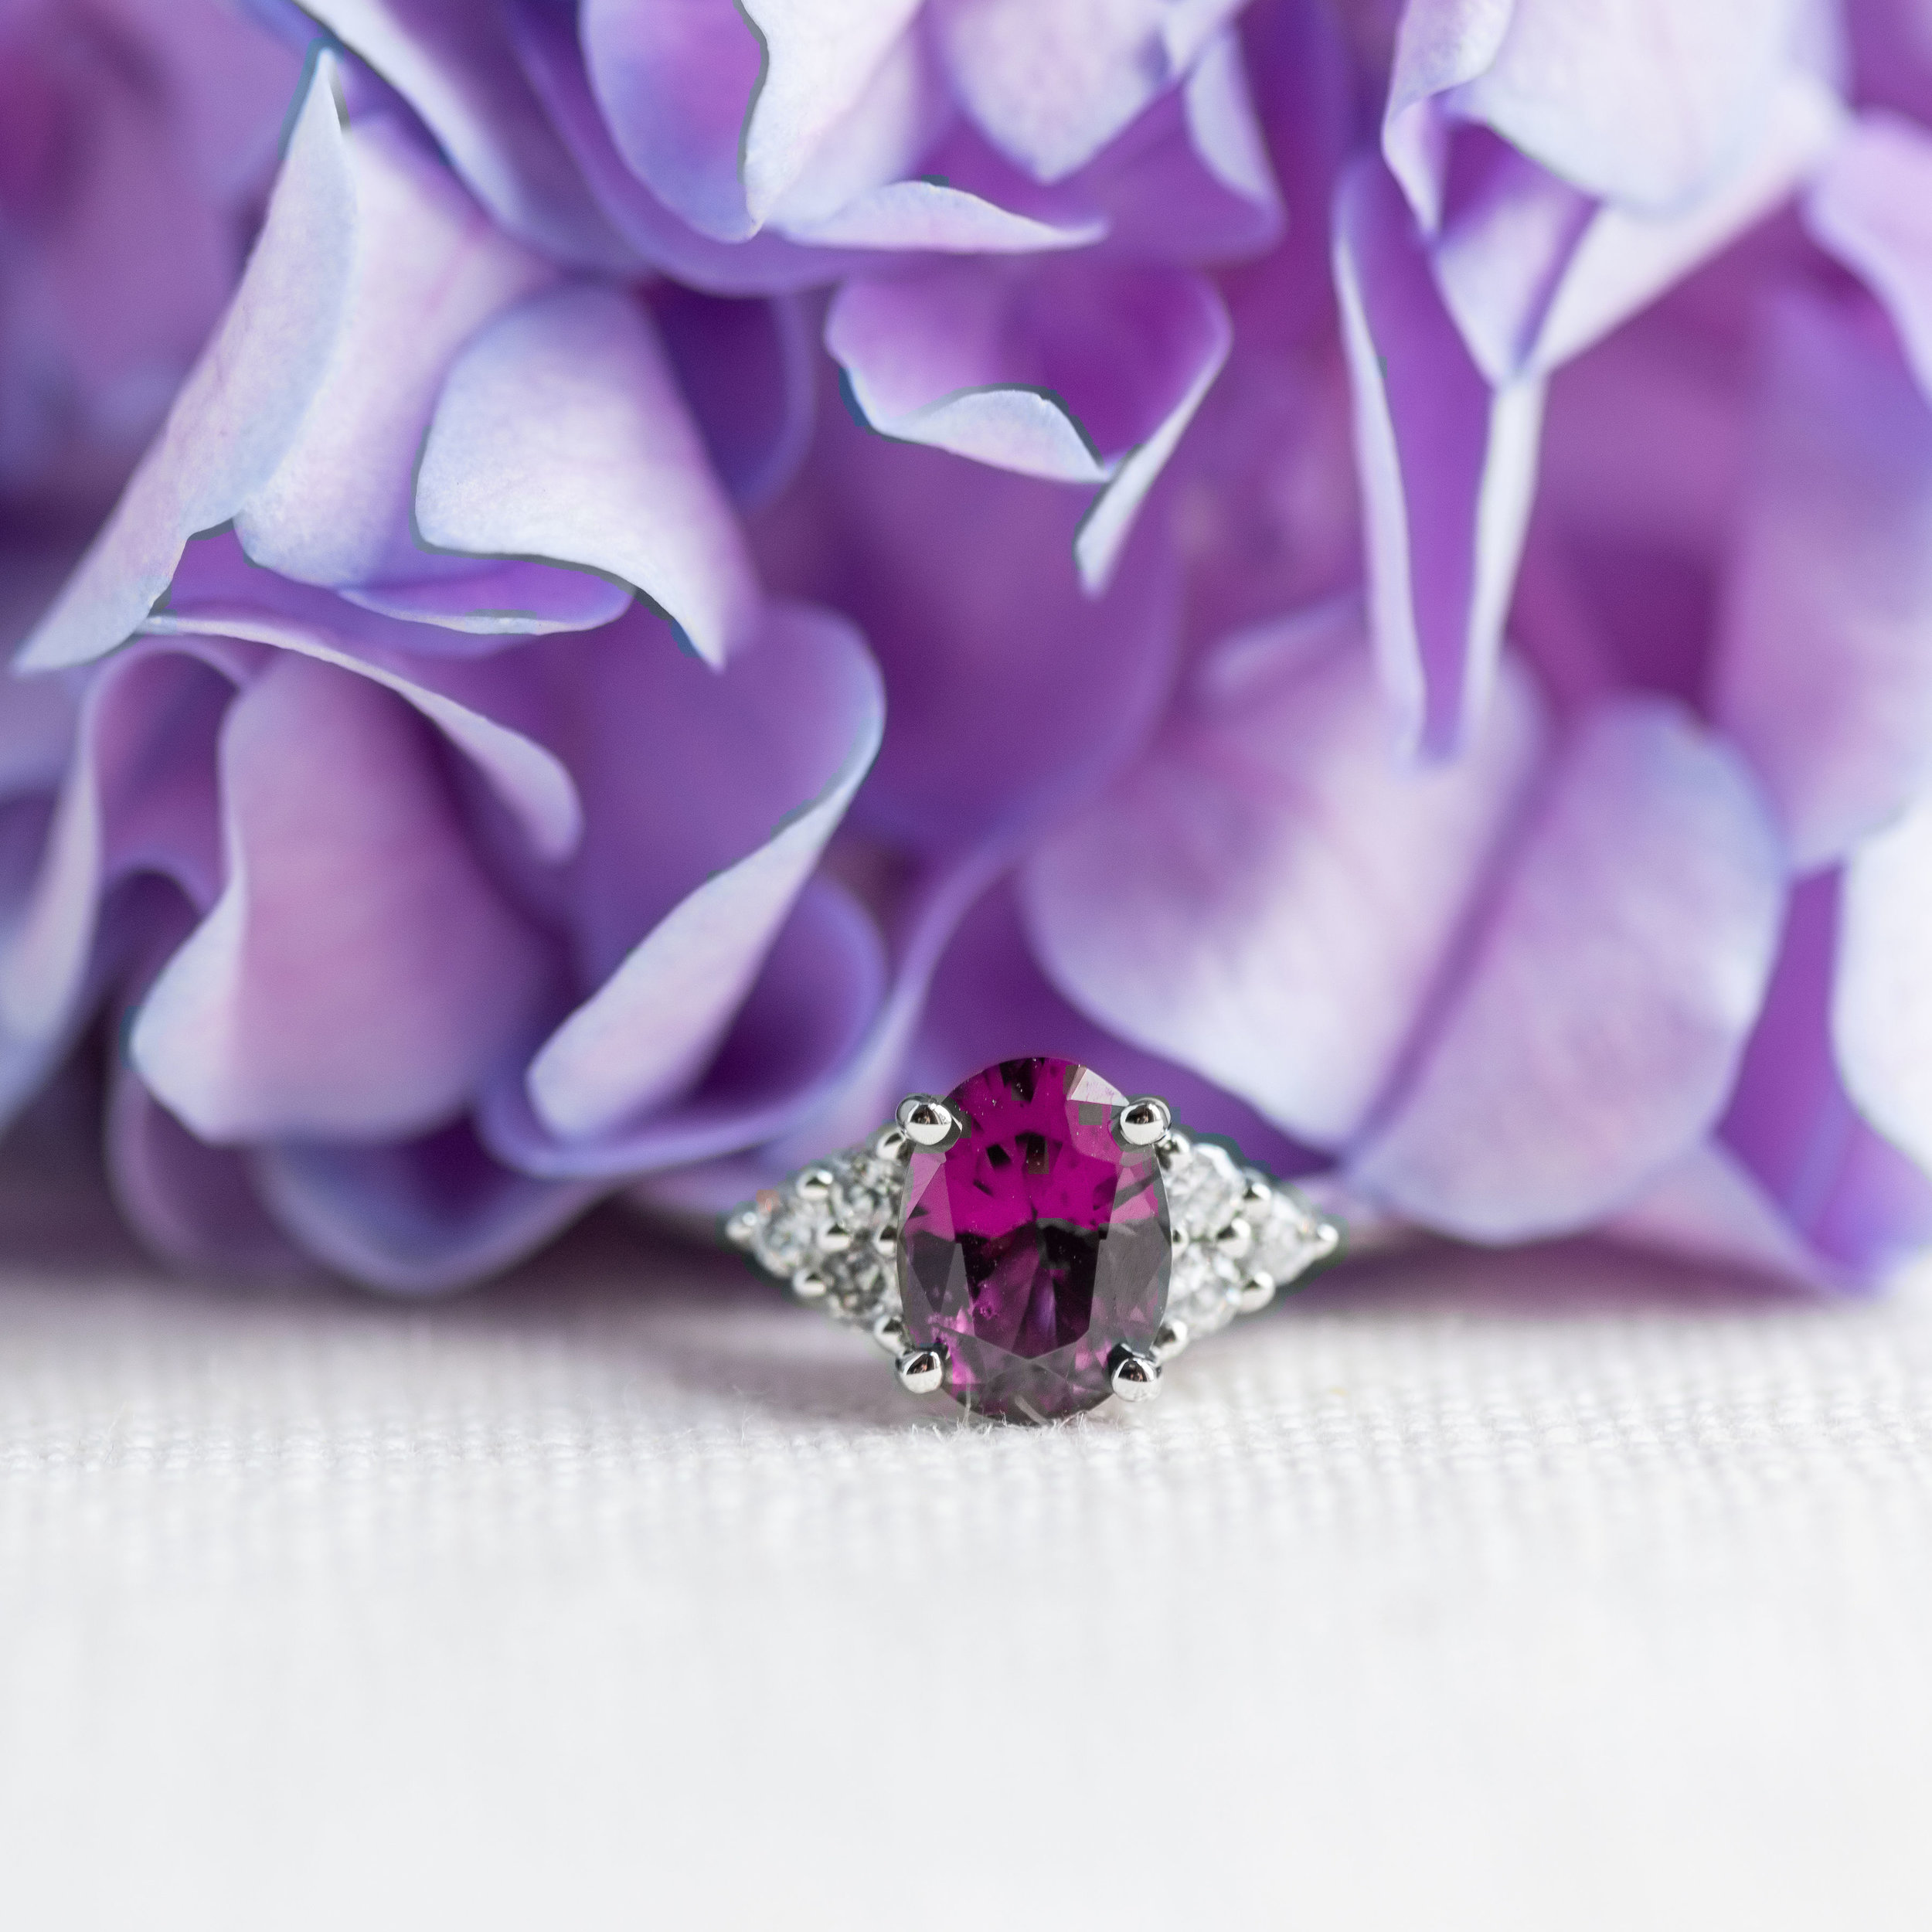 The perfect color combination of purple and pink in this garnet and diamond ring! Shop this beauty  HERE .